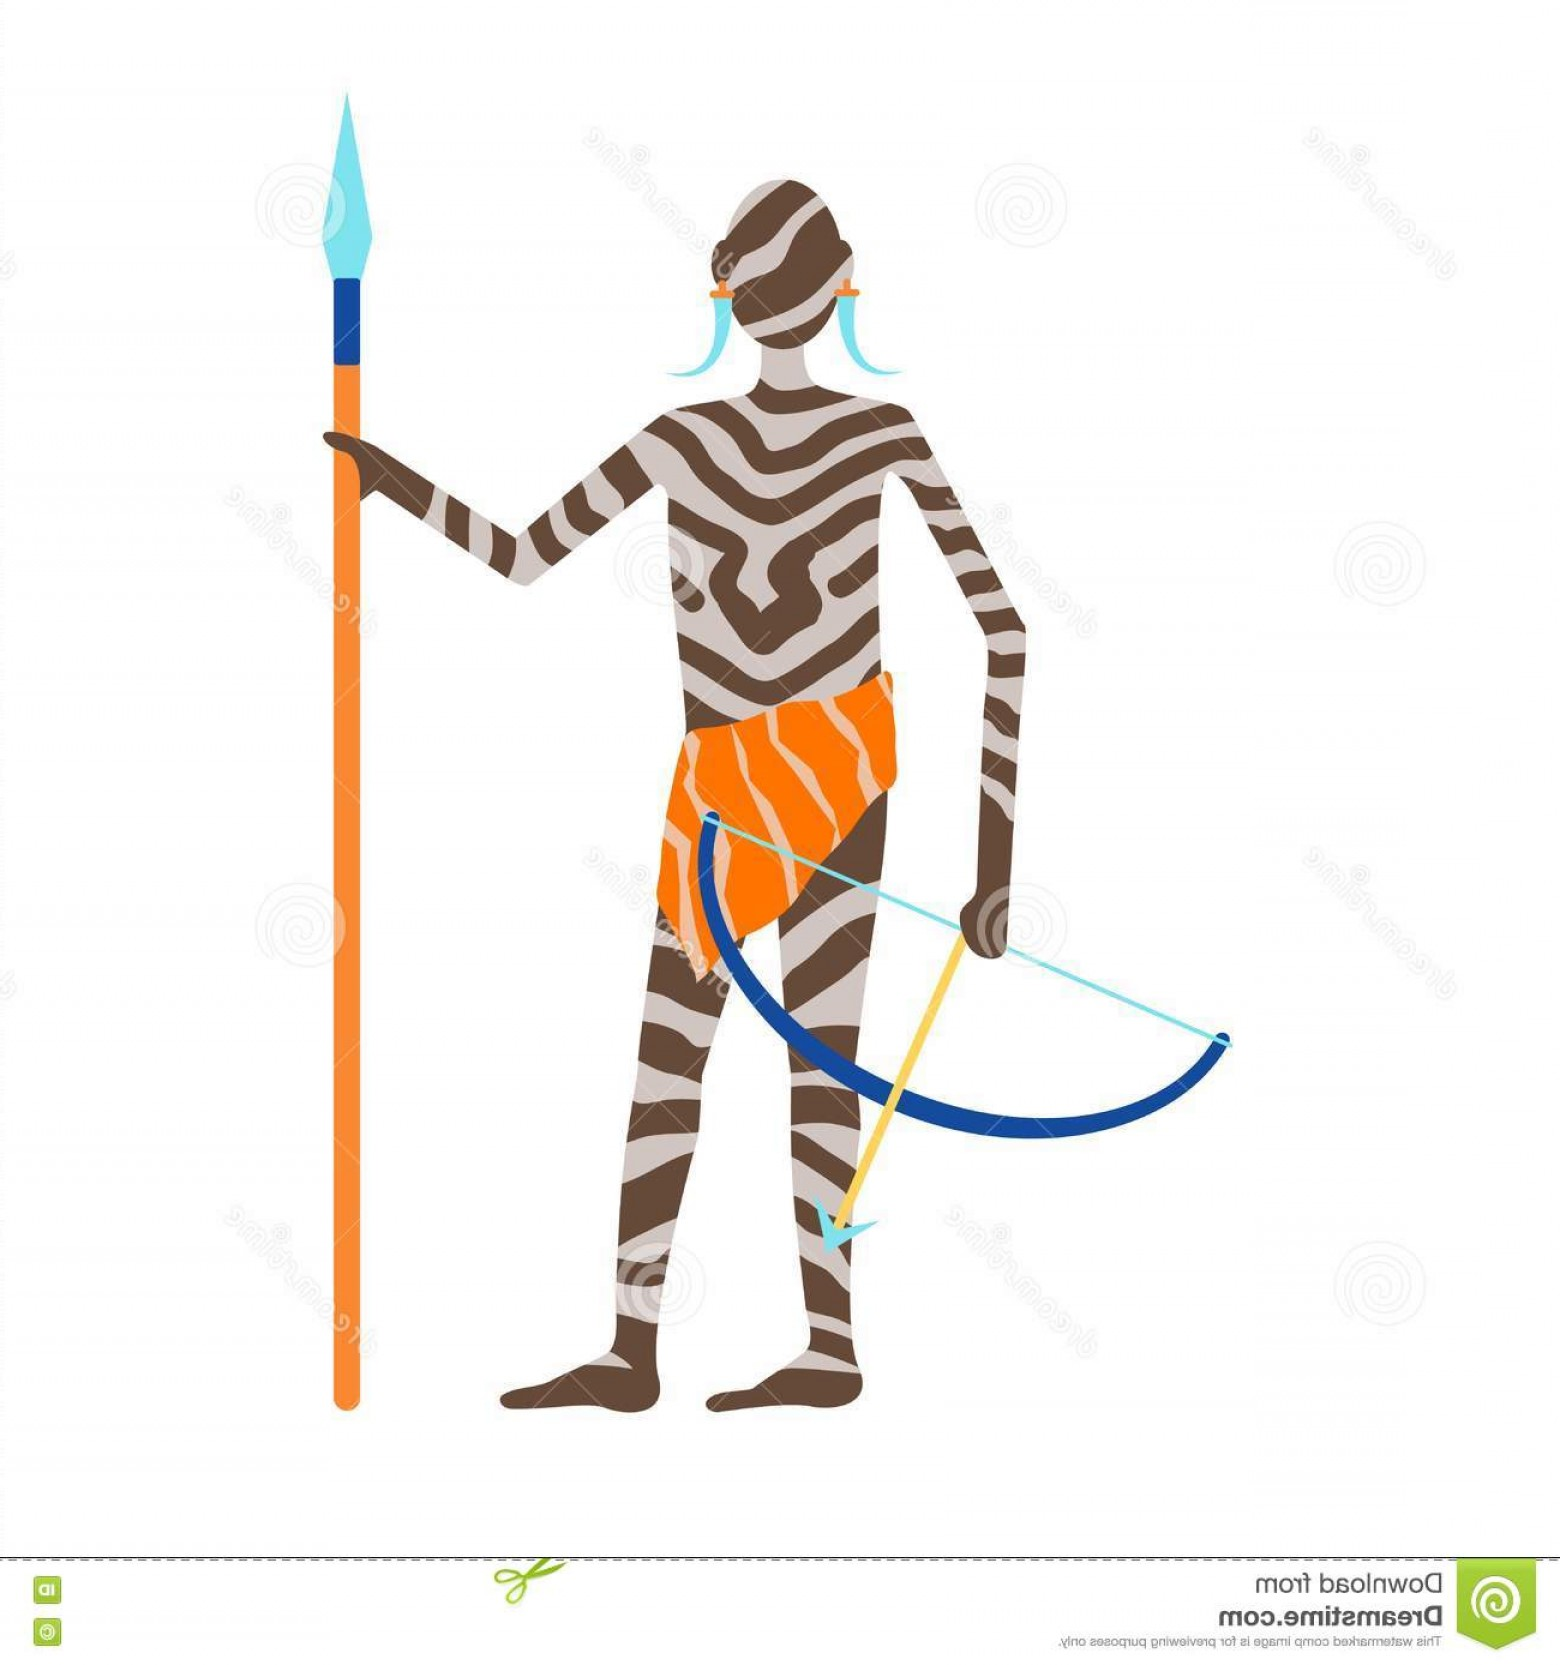 Vector Organisms On A Person: Stock Illustration Maasai African Man Hunter Traditional Clothing Happy Person Vector Illustration People Image Old Art People Image